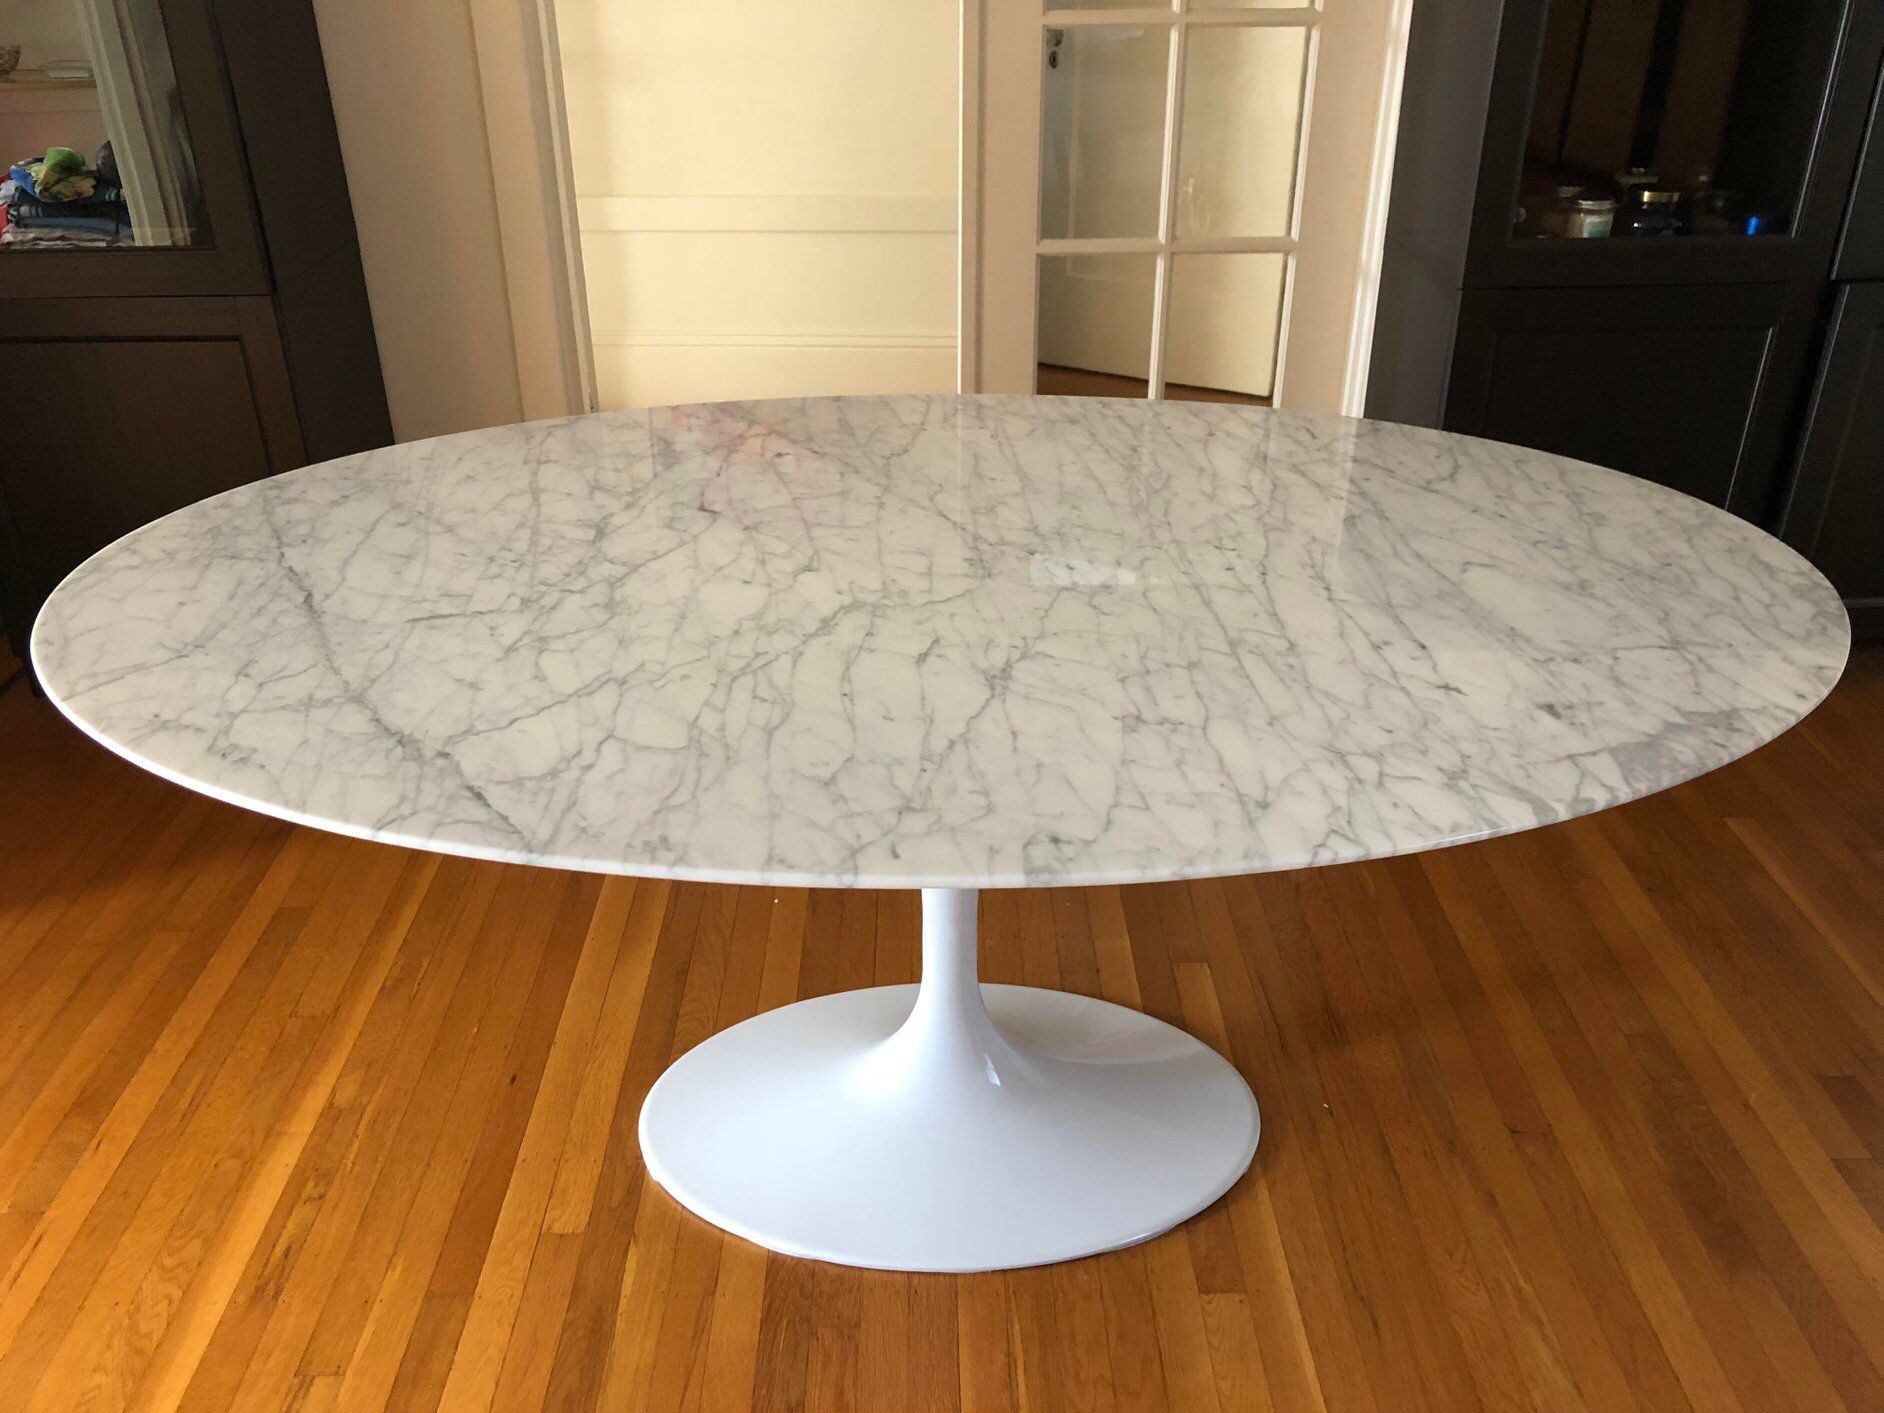 Replica Saarinen Oval Marble Dining Table On Chairish Com Oval